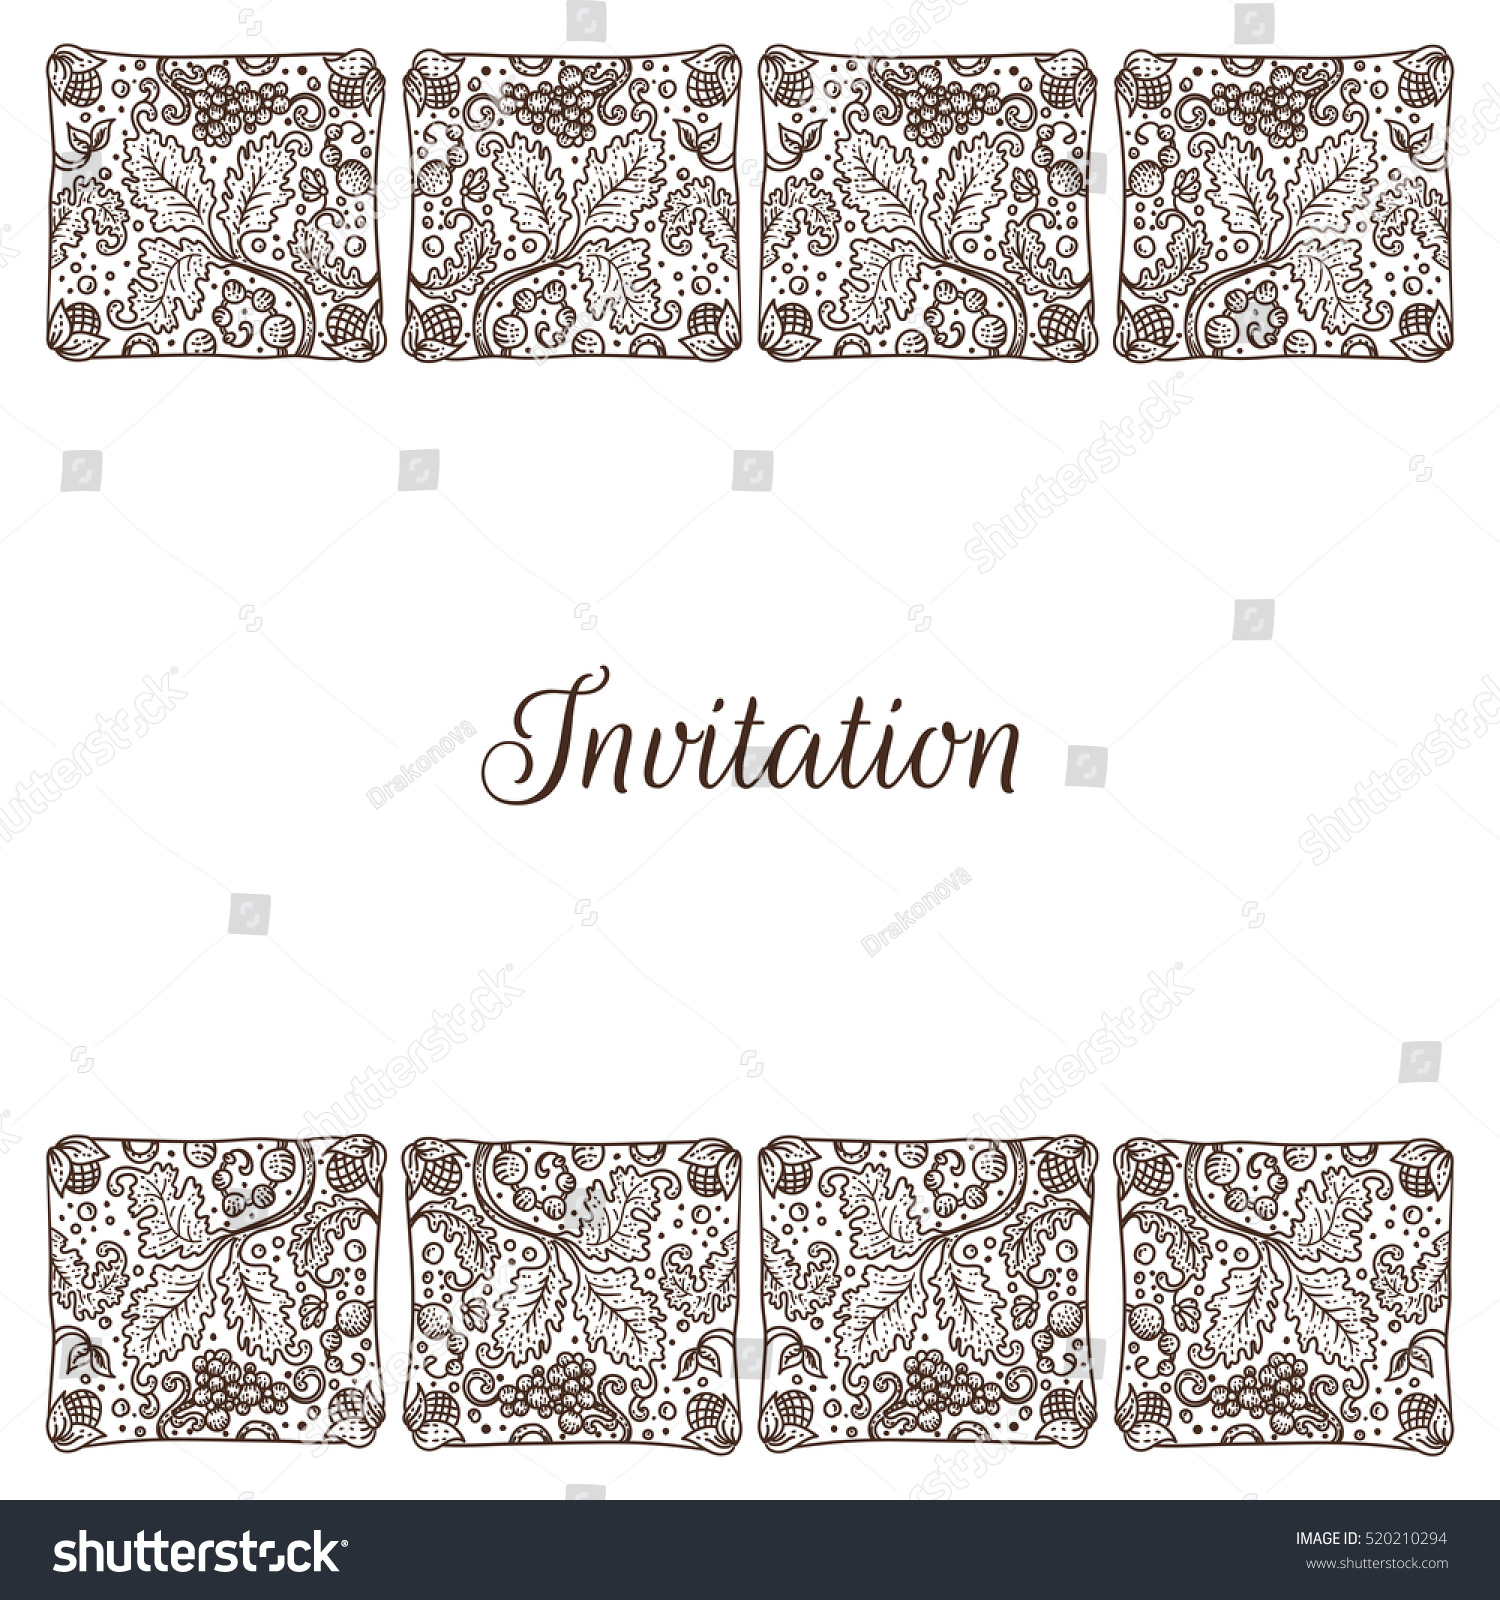 Invitation lyrics ailee images invitation sample and invitation design invitation lyrics ailee image collections invitation sample and invitation lyrics ailee image collections invitation sample and stopboris